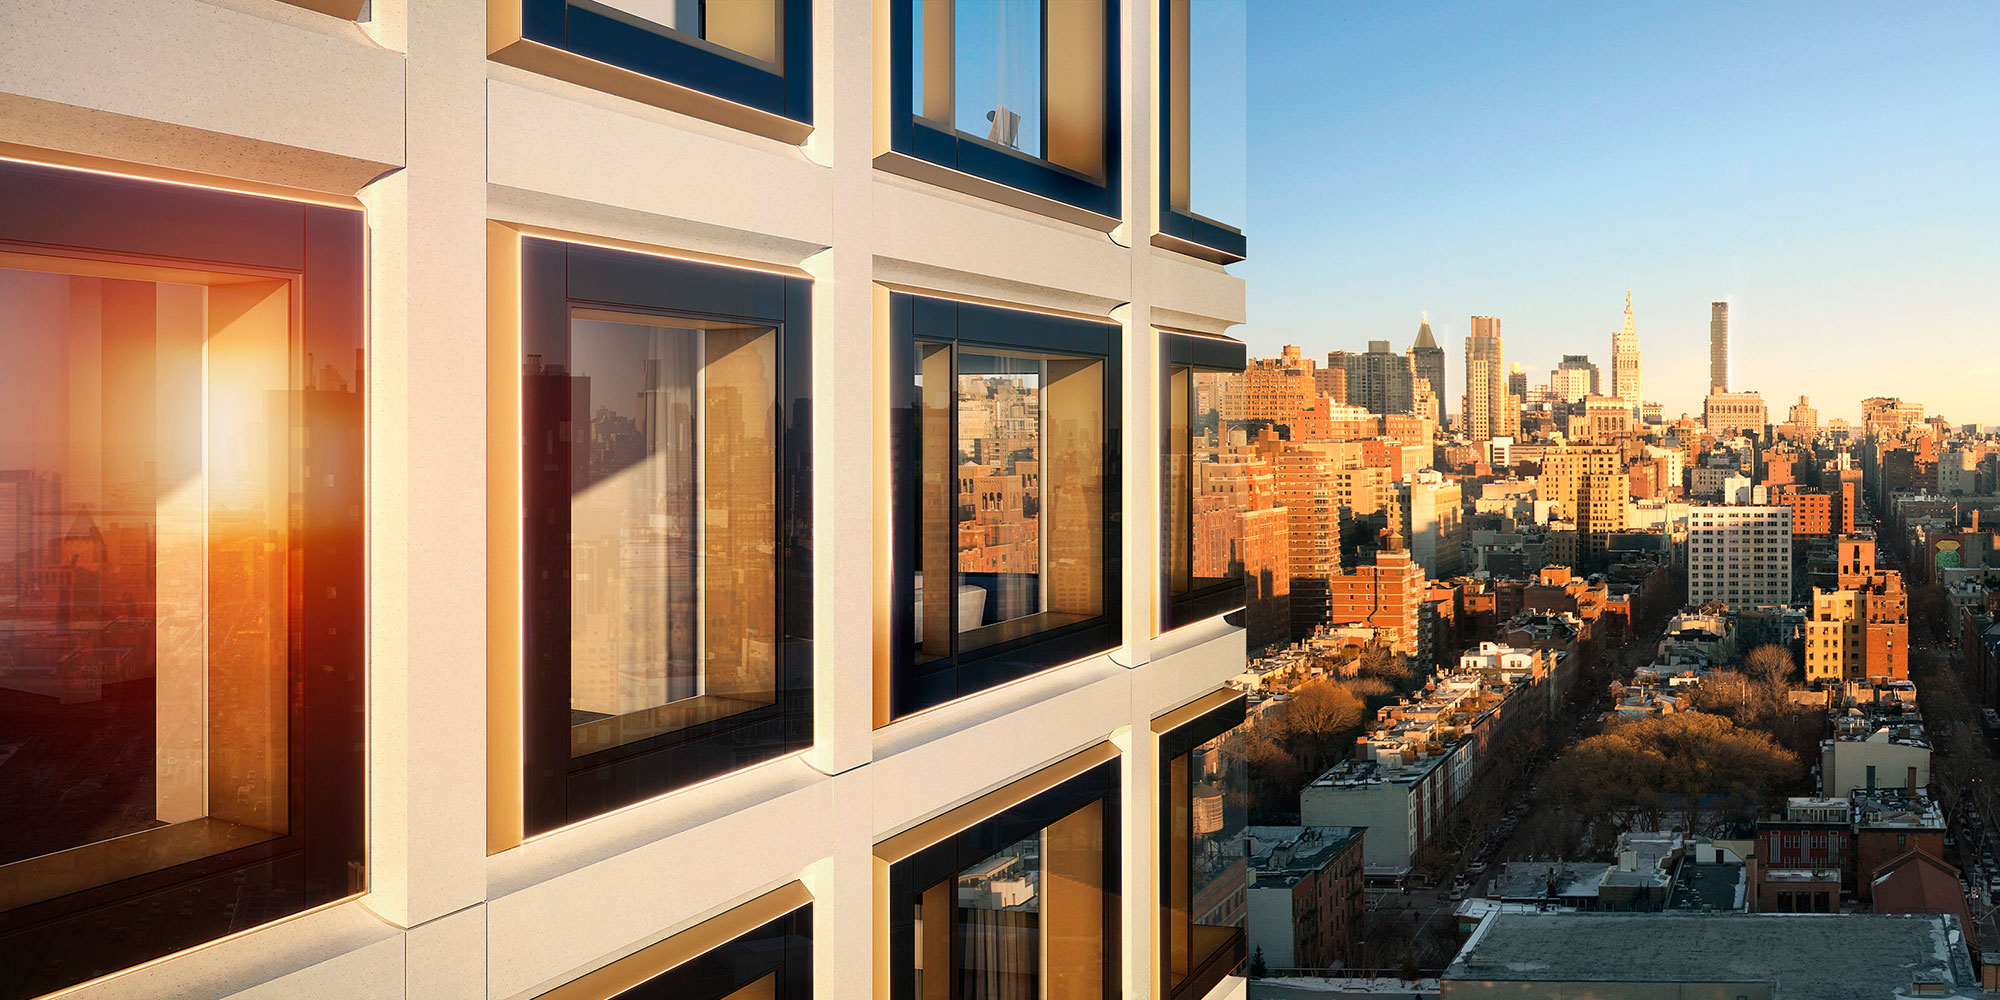 551West21 by Norman Foster, Norman foster, 551w21, starchitecture chelsea, foster+partners, 551w21